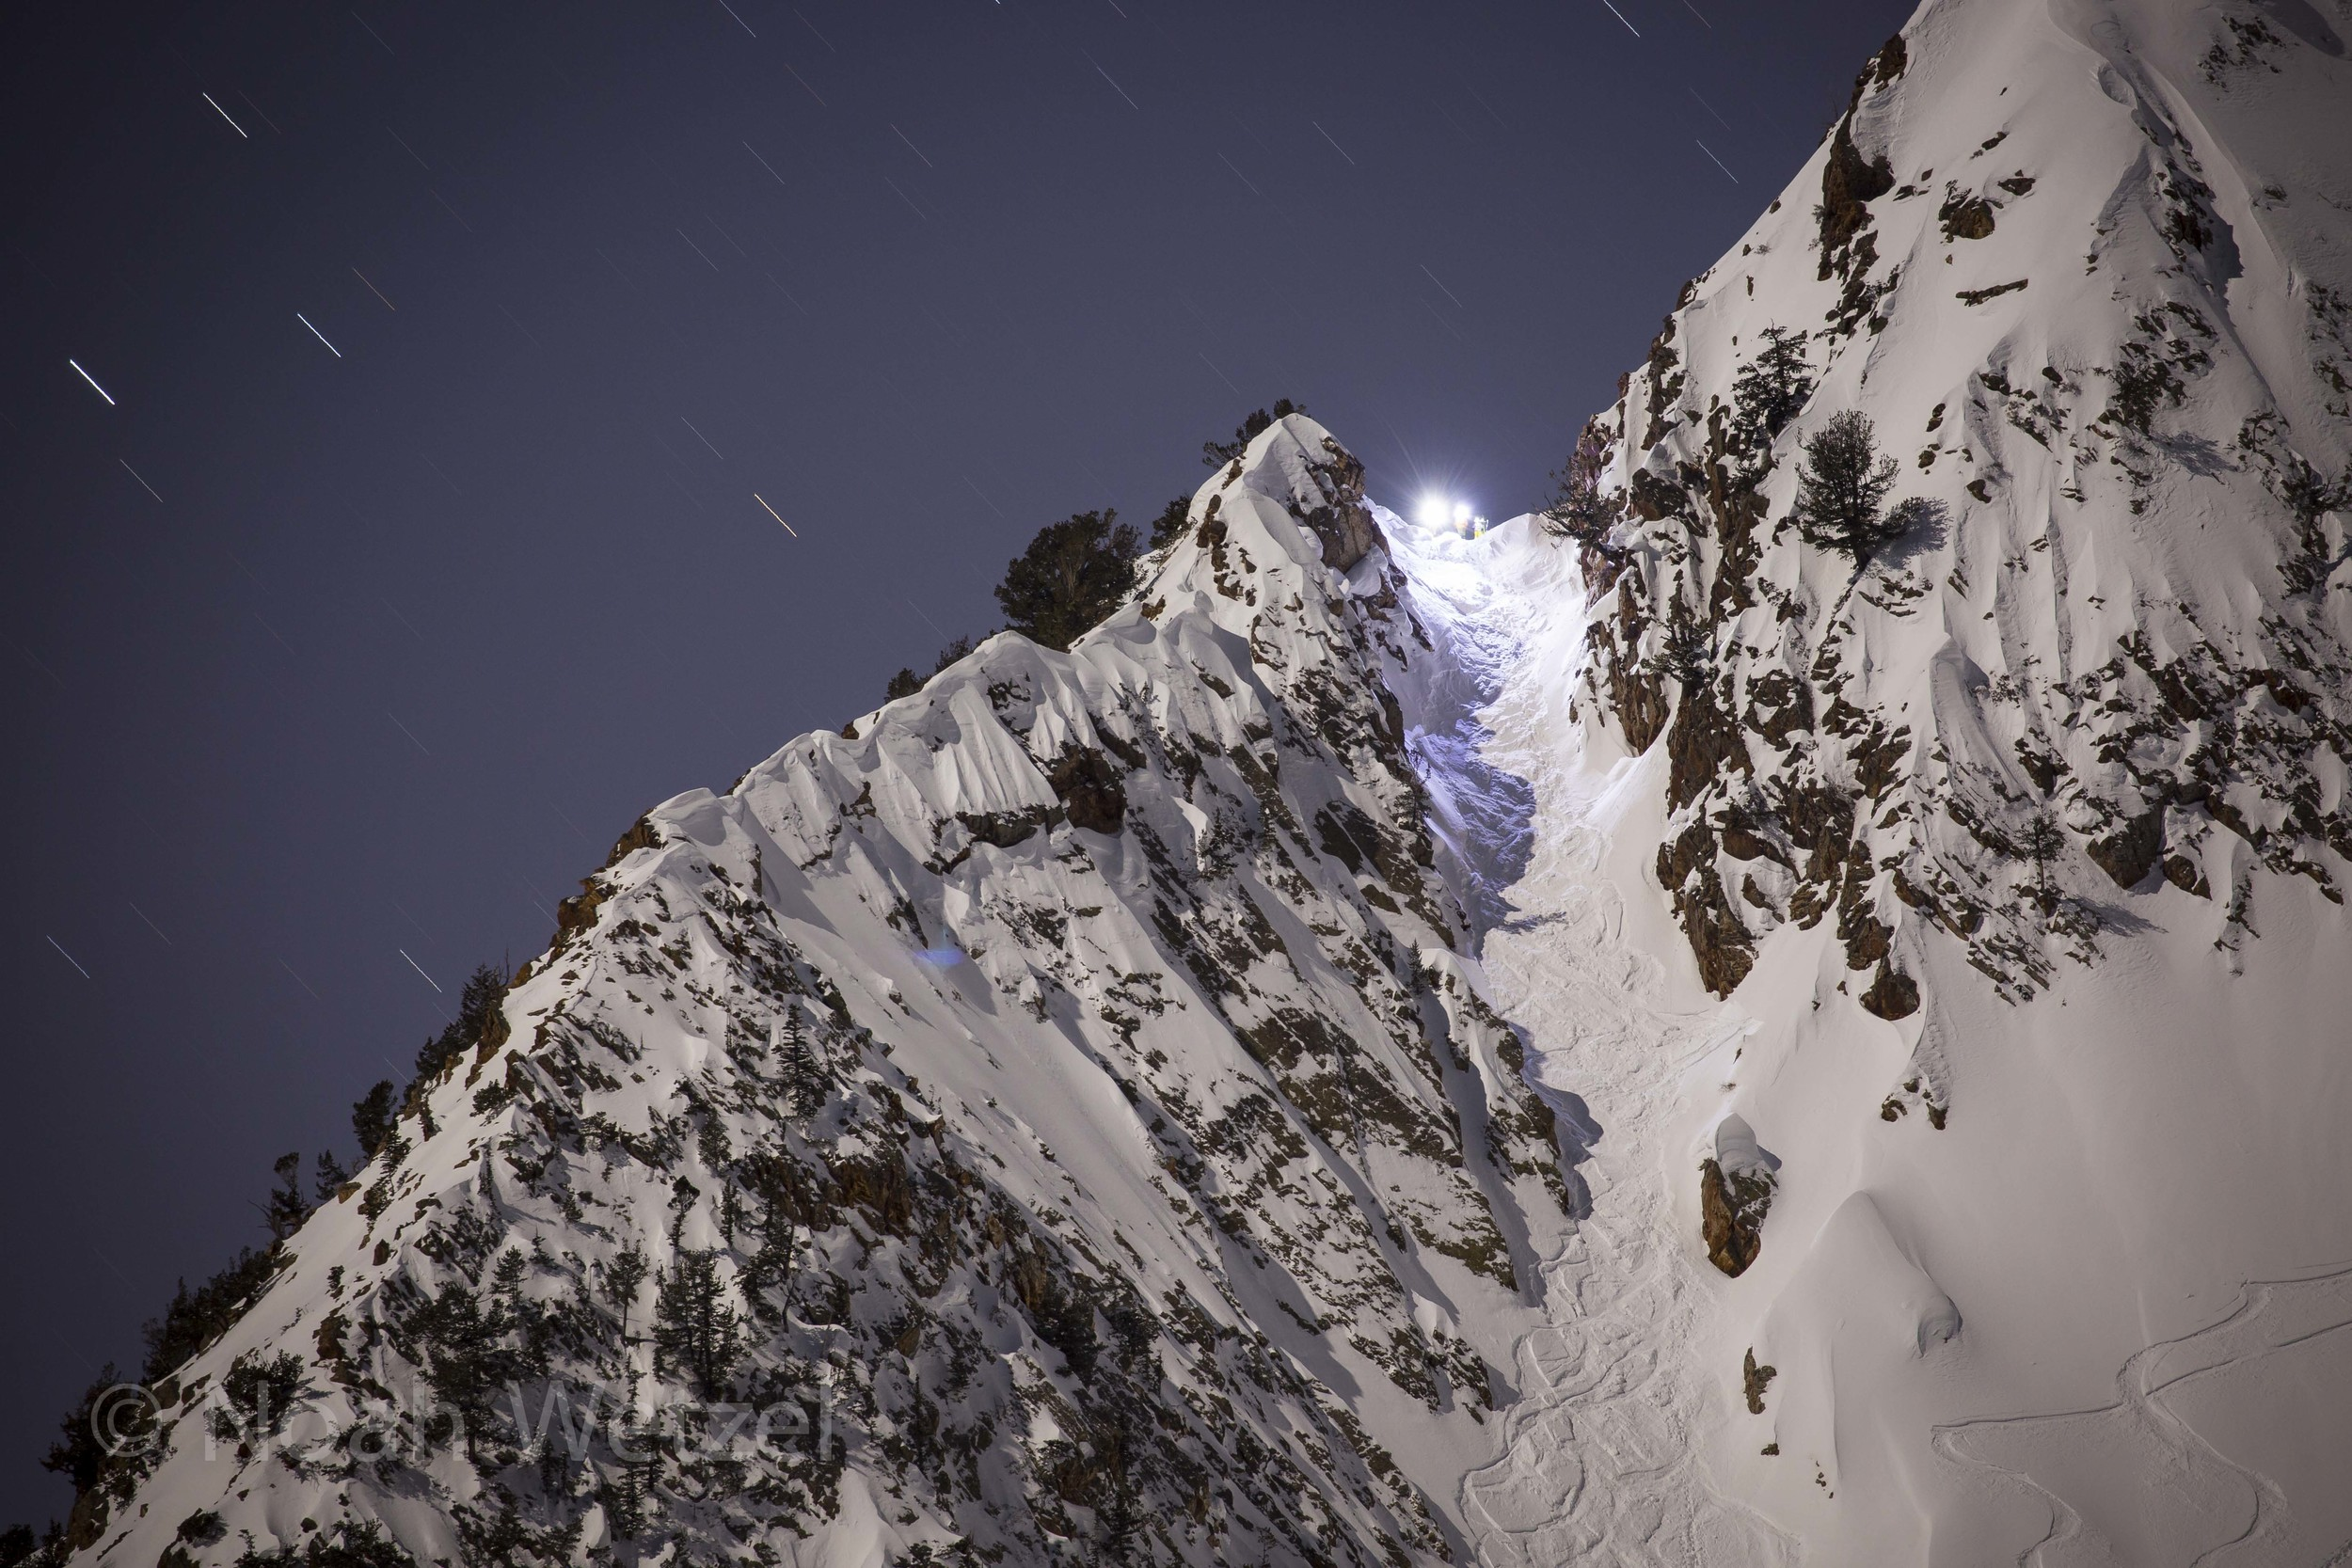 Willie Nelson, Chris Brule, and Lucy Sackbauer standing atop Suicide Chute. Full Moon Skiing. Day 2  12:30am